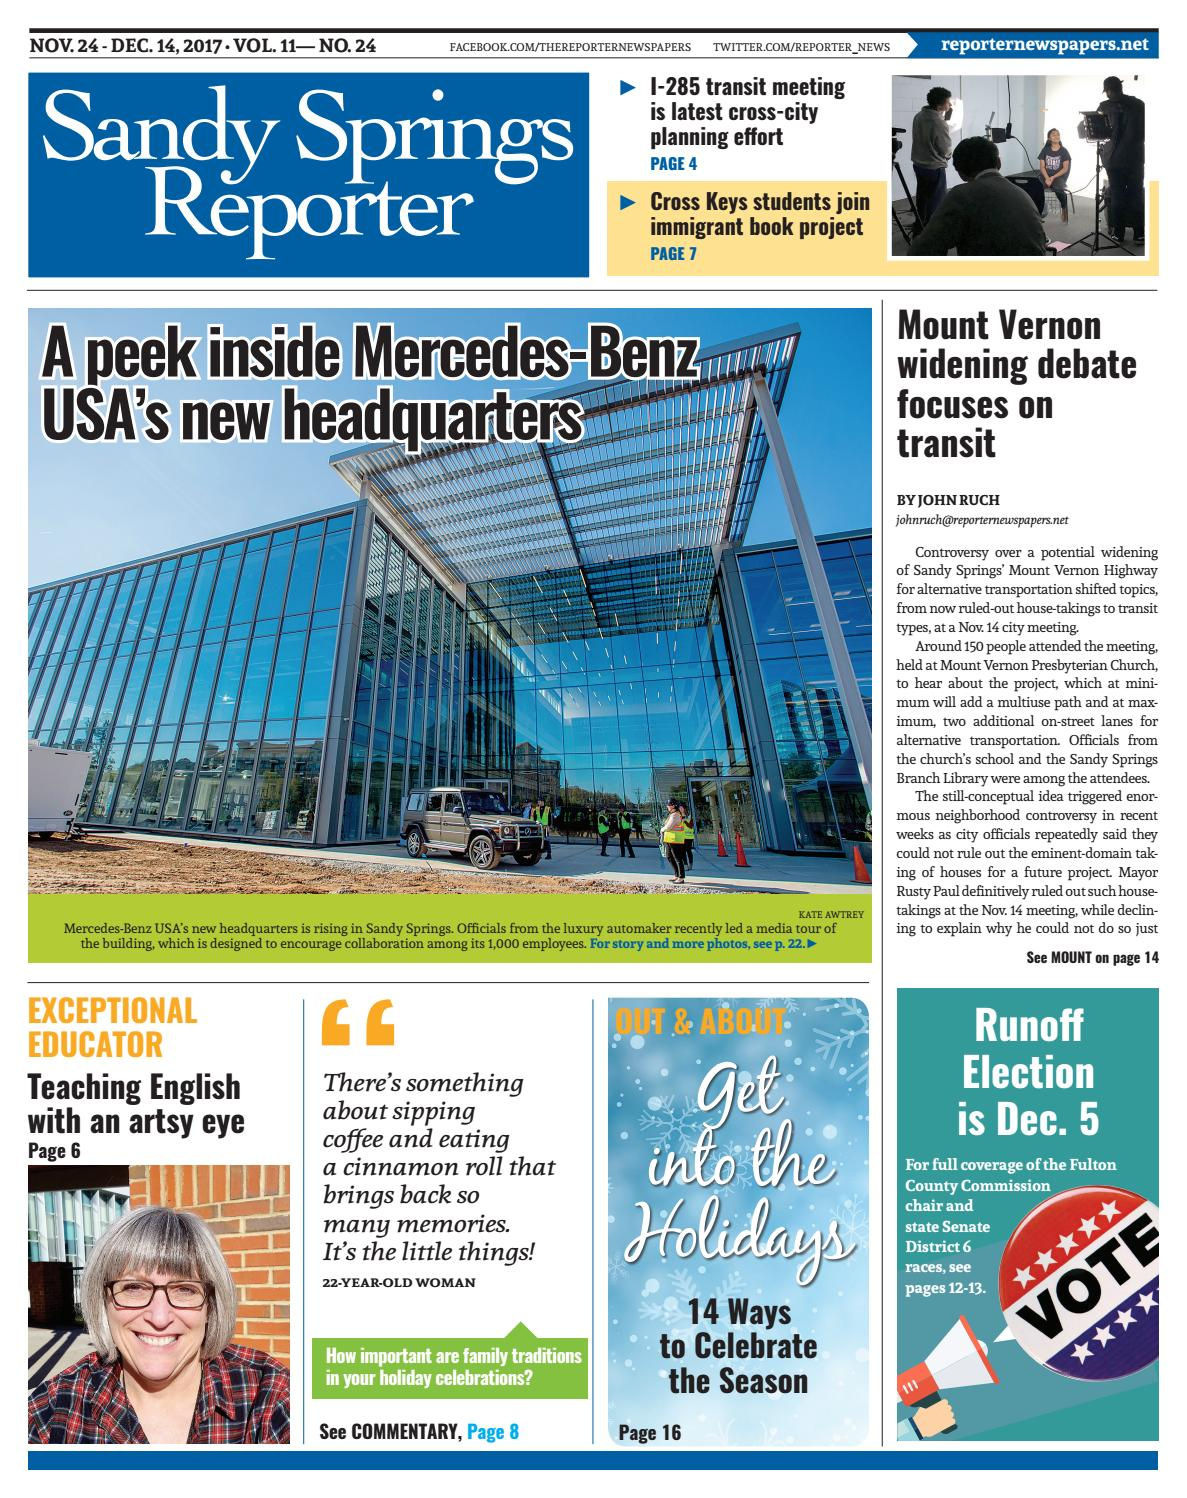 dcb6c393cda 11-24-17 Sandy Springs Reporter by Reporter Newspapers - issuu